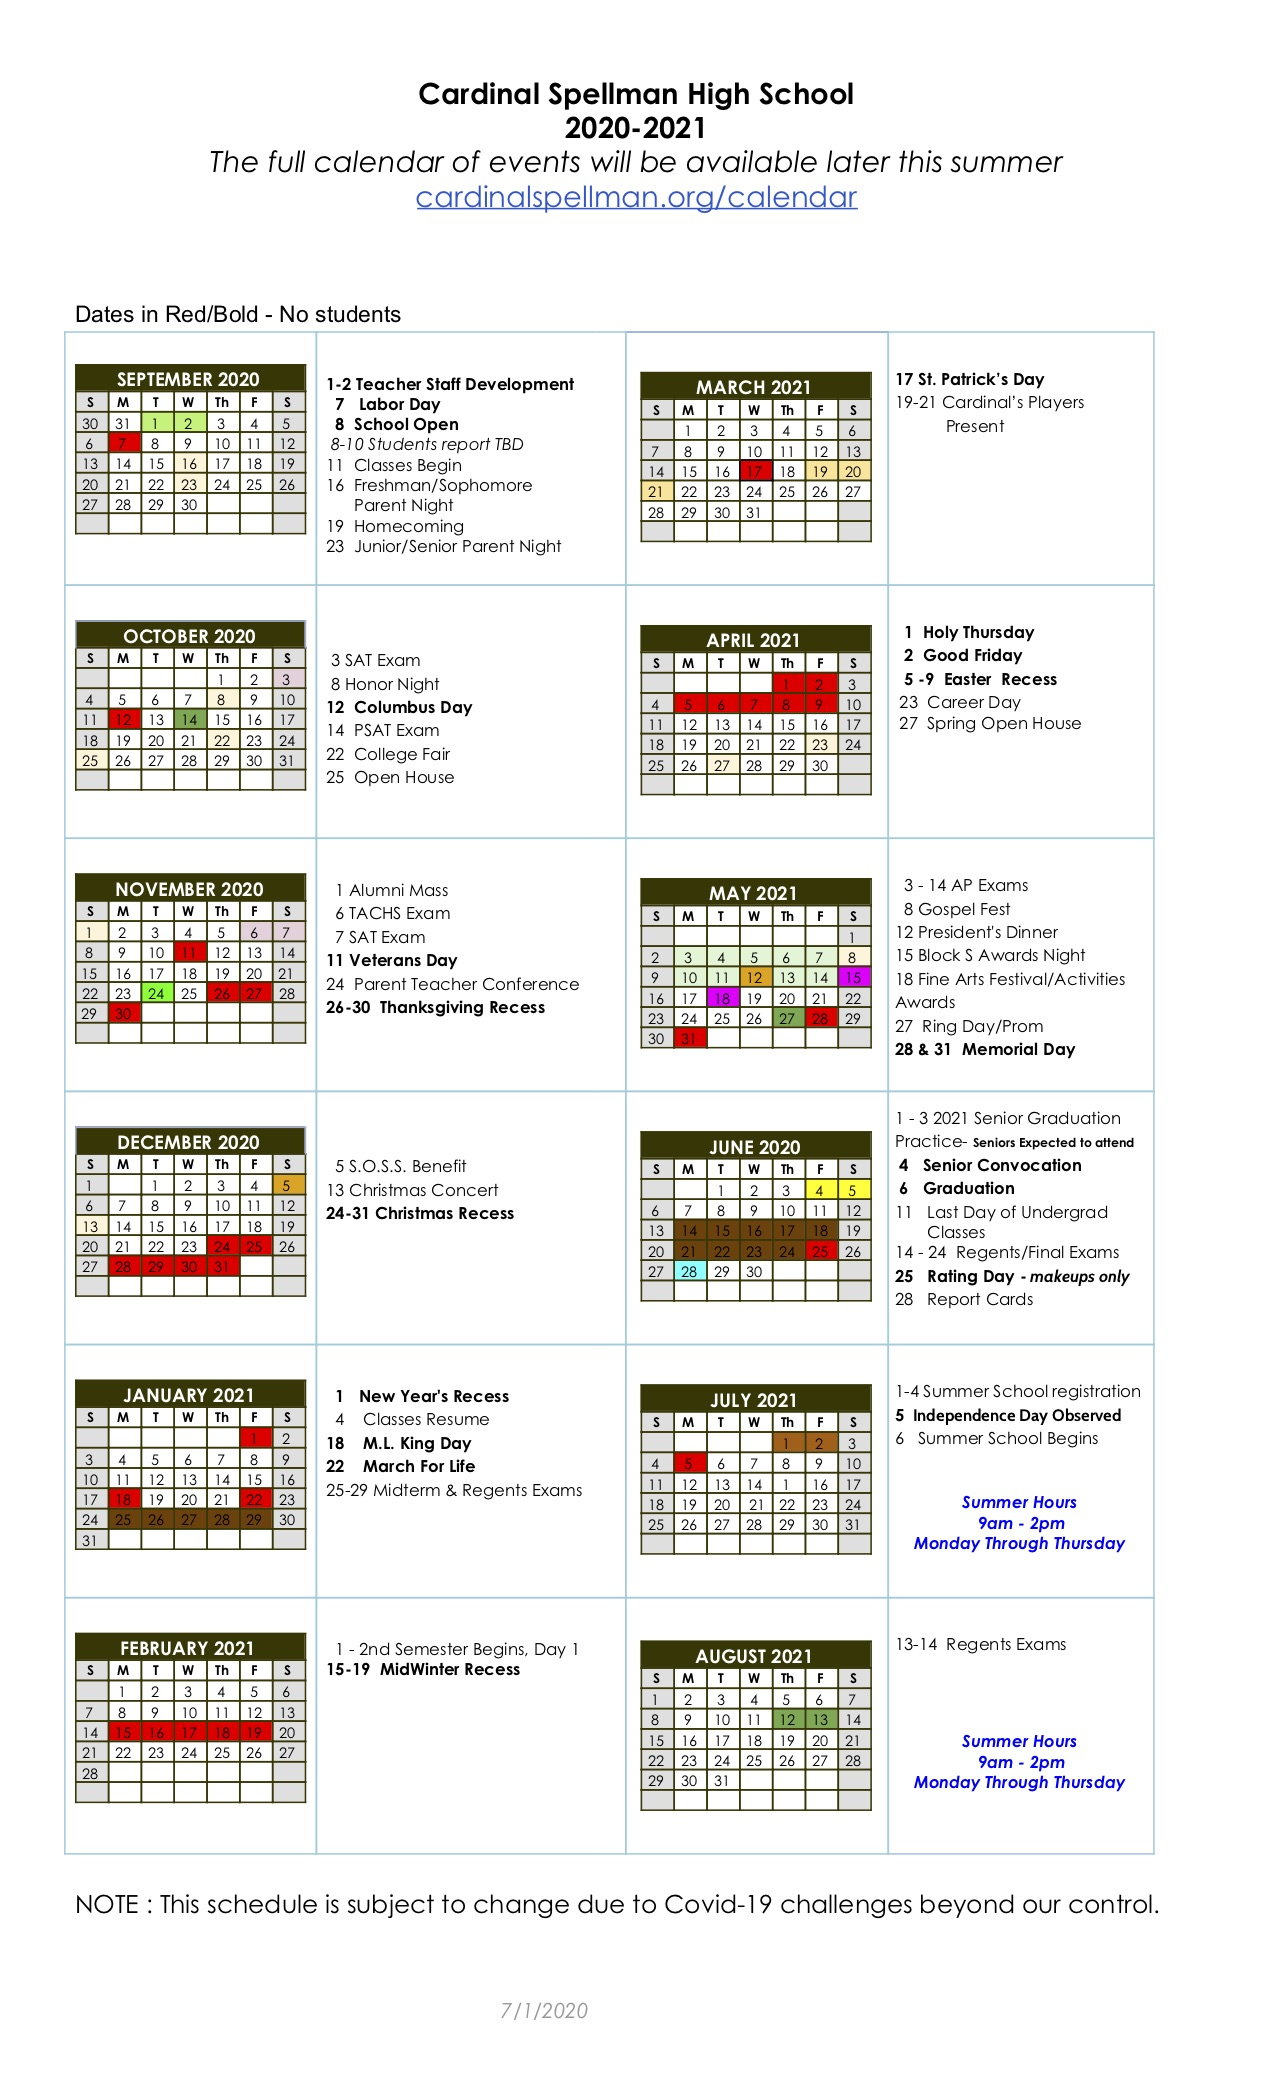 University Of New Haven Academic Calendar 2021 | 2021 Calendar pertaining to Academic Calendar 2021-2020 University Of Central Florida